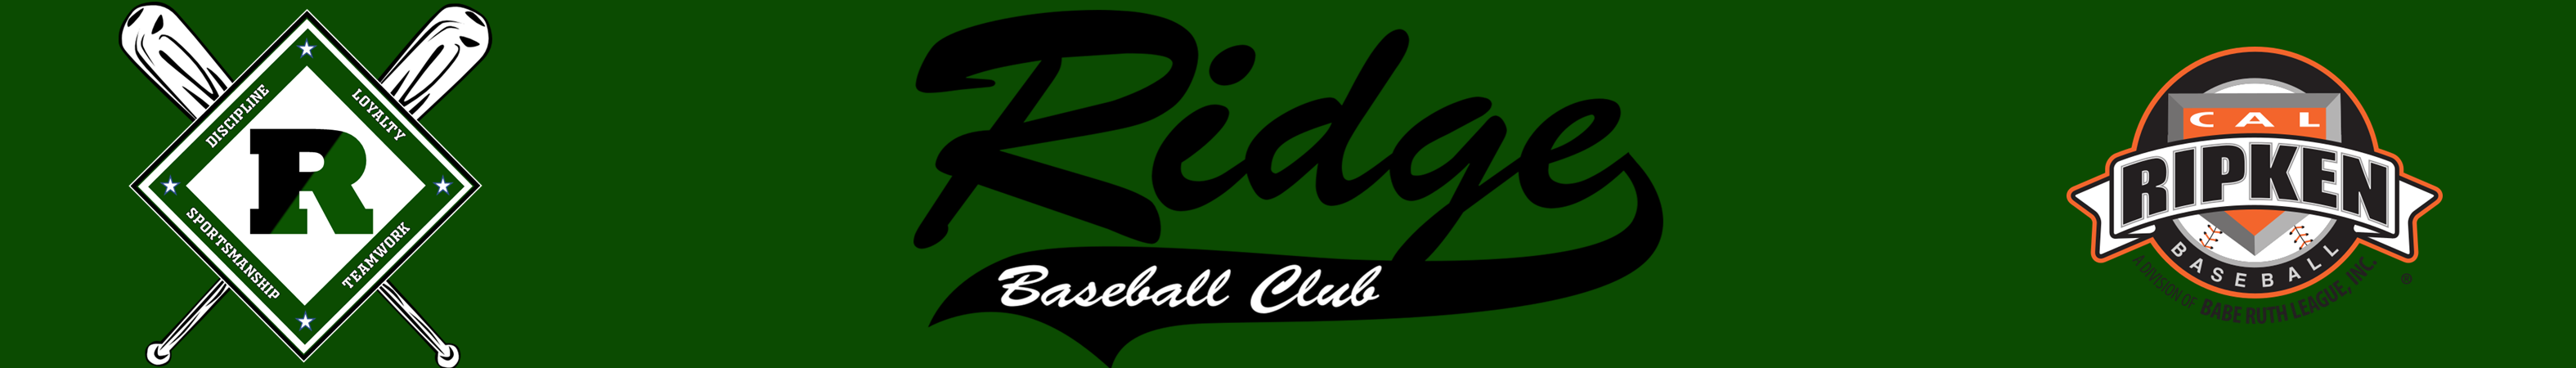 Ridge Baseball Club, Baseball, Run, Field